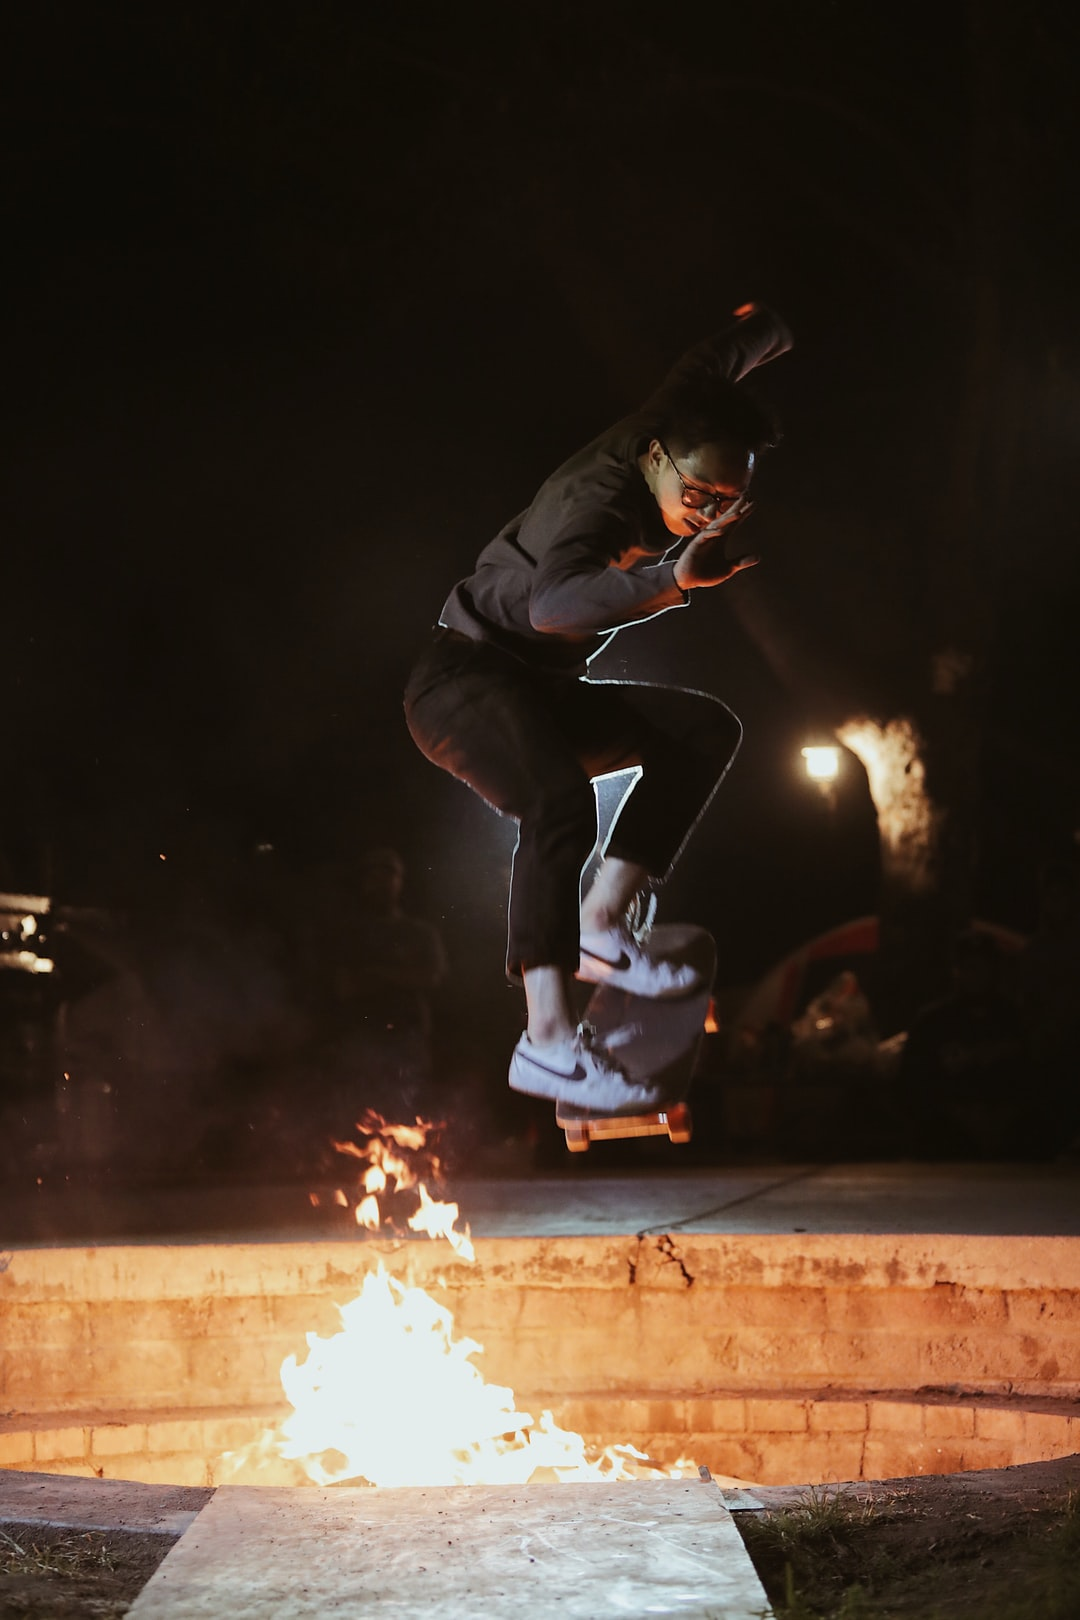 Ollie over the fire